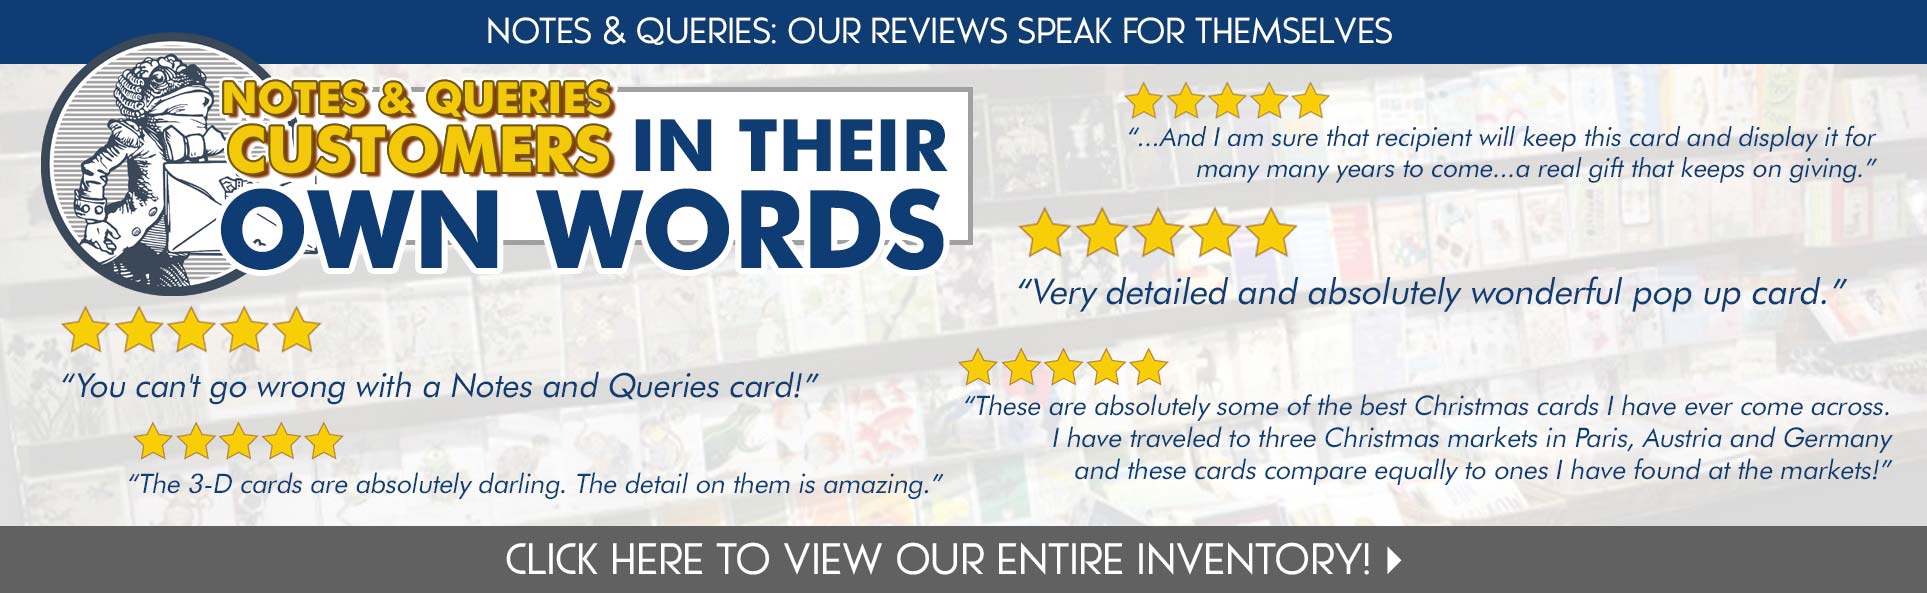 Notes & Queries Gets Five Star Reviews!